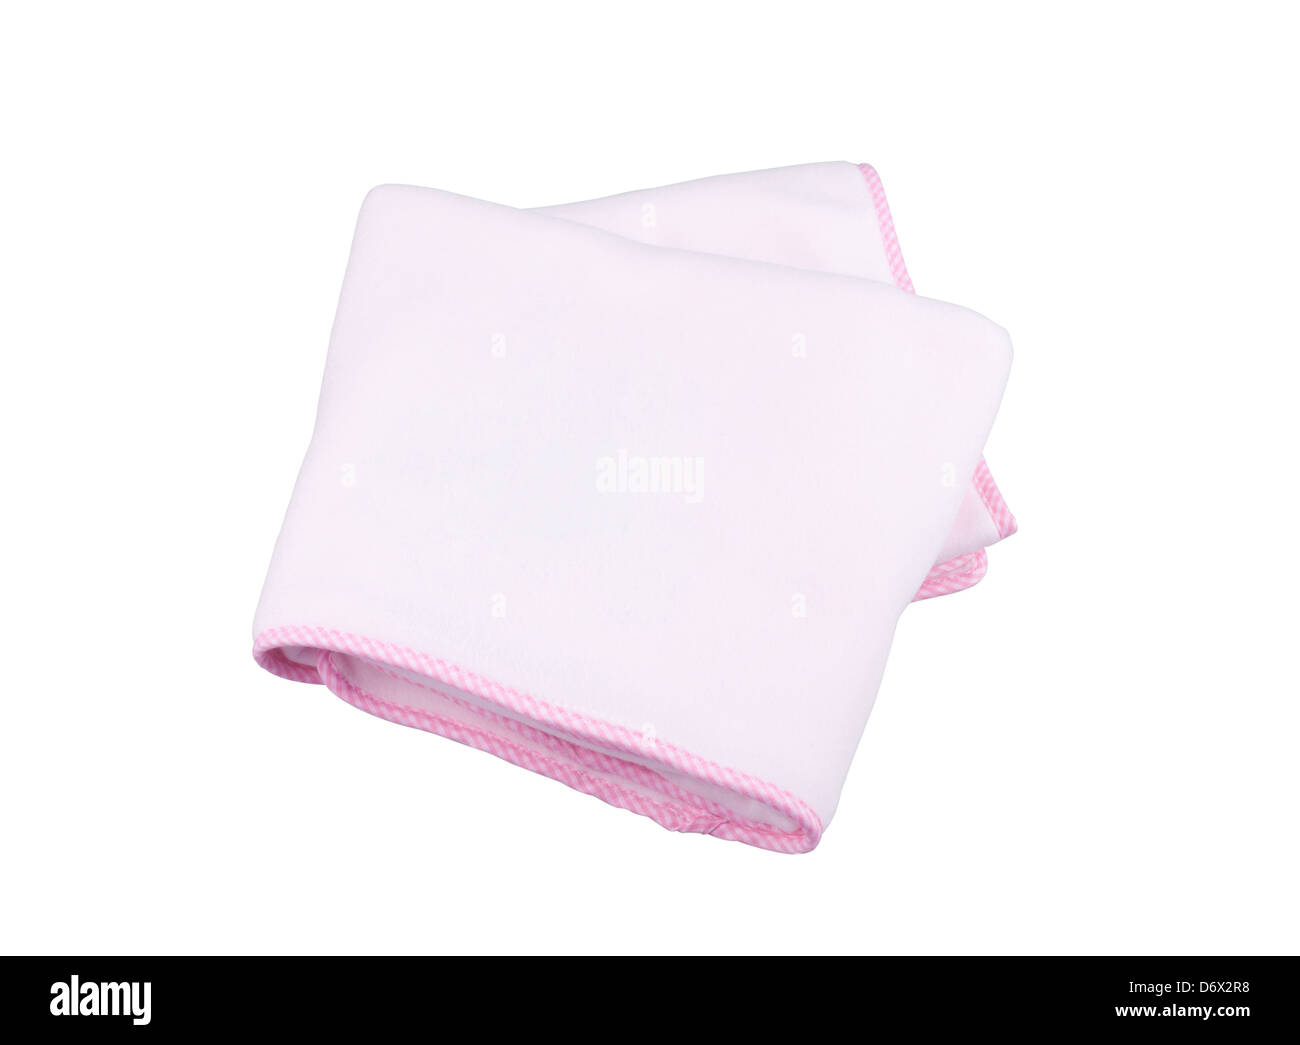 Pink fleece blanket for baby on white background - Stock Image